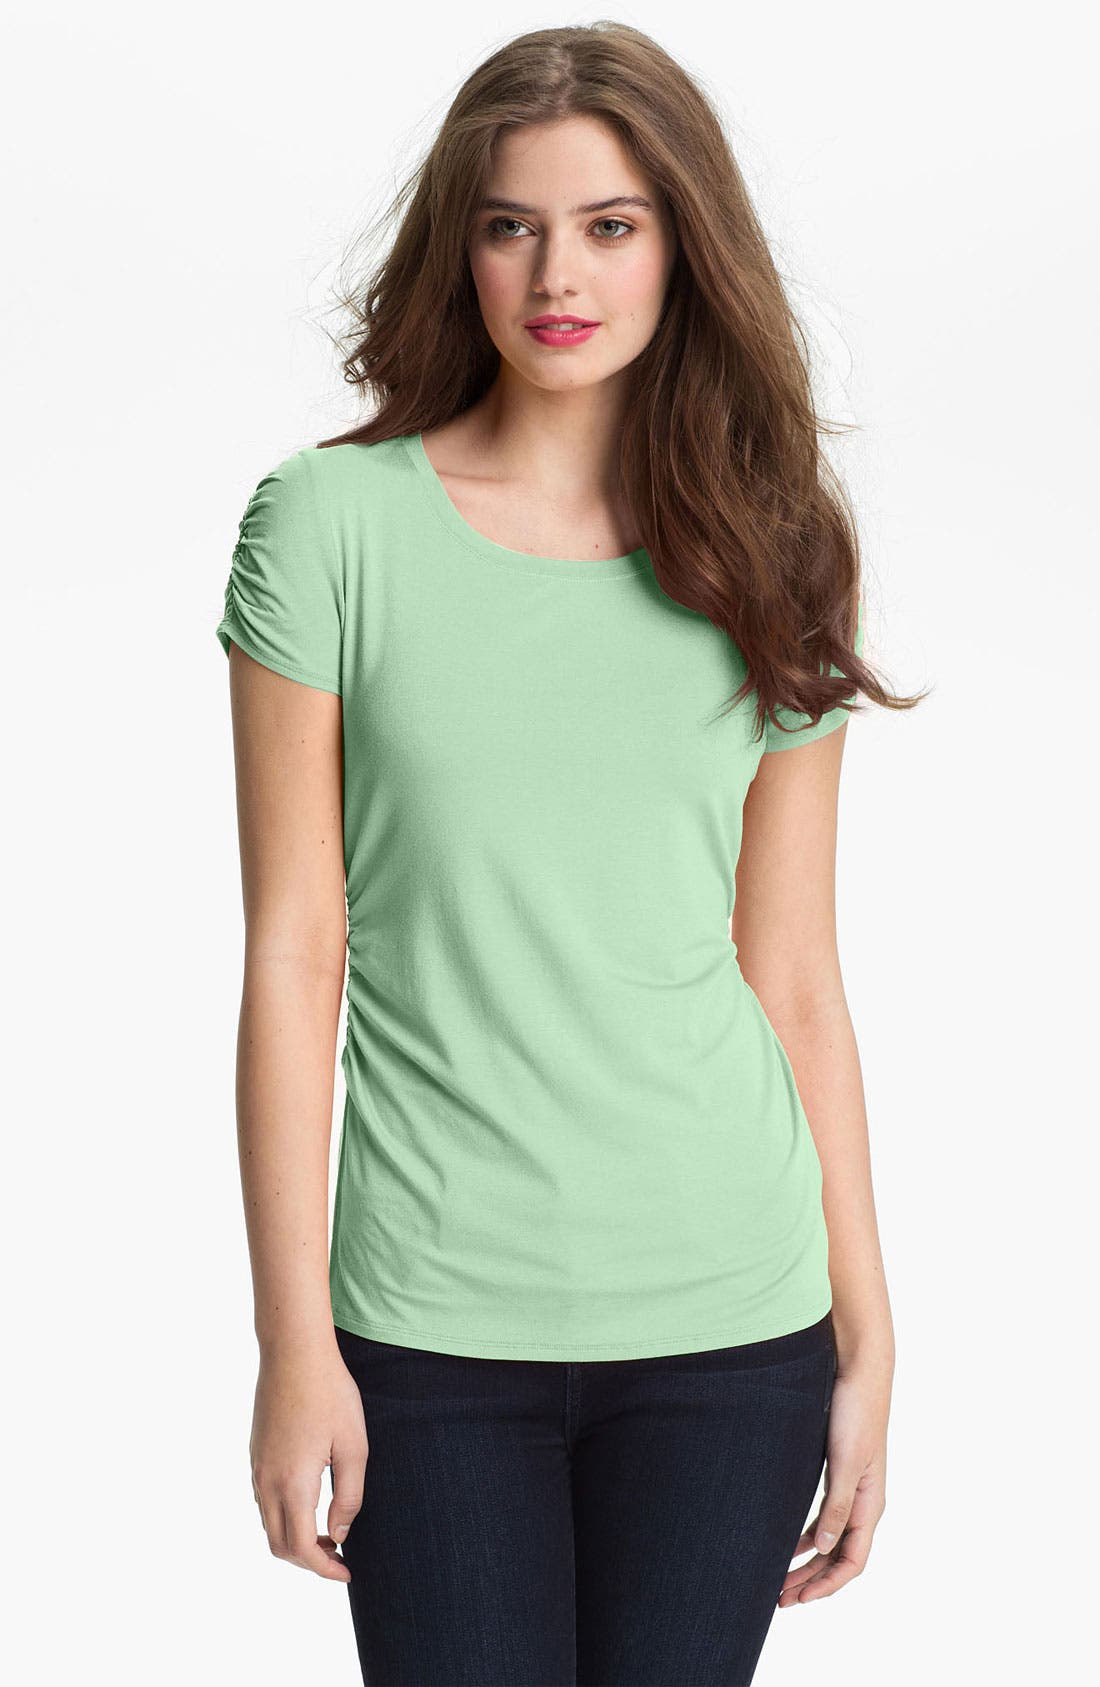 Alternate Image 1 Selected - Vince Camuto Ruched Scoop Neck Top